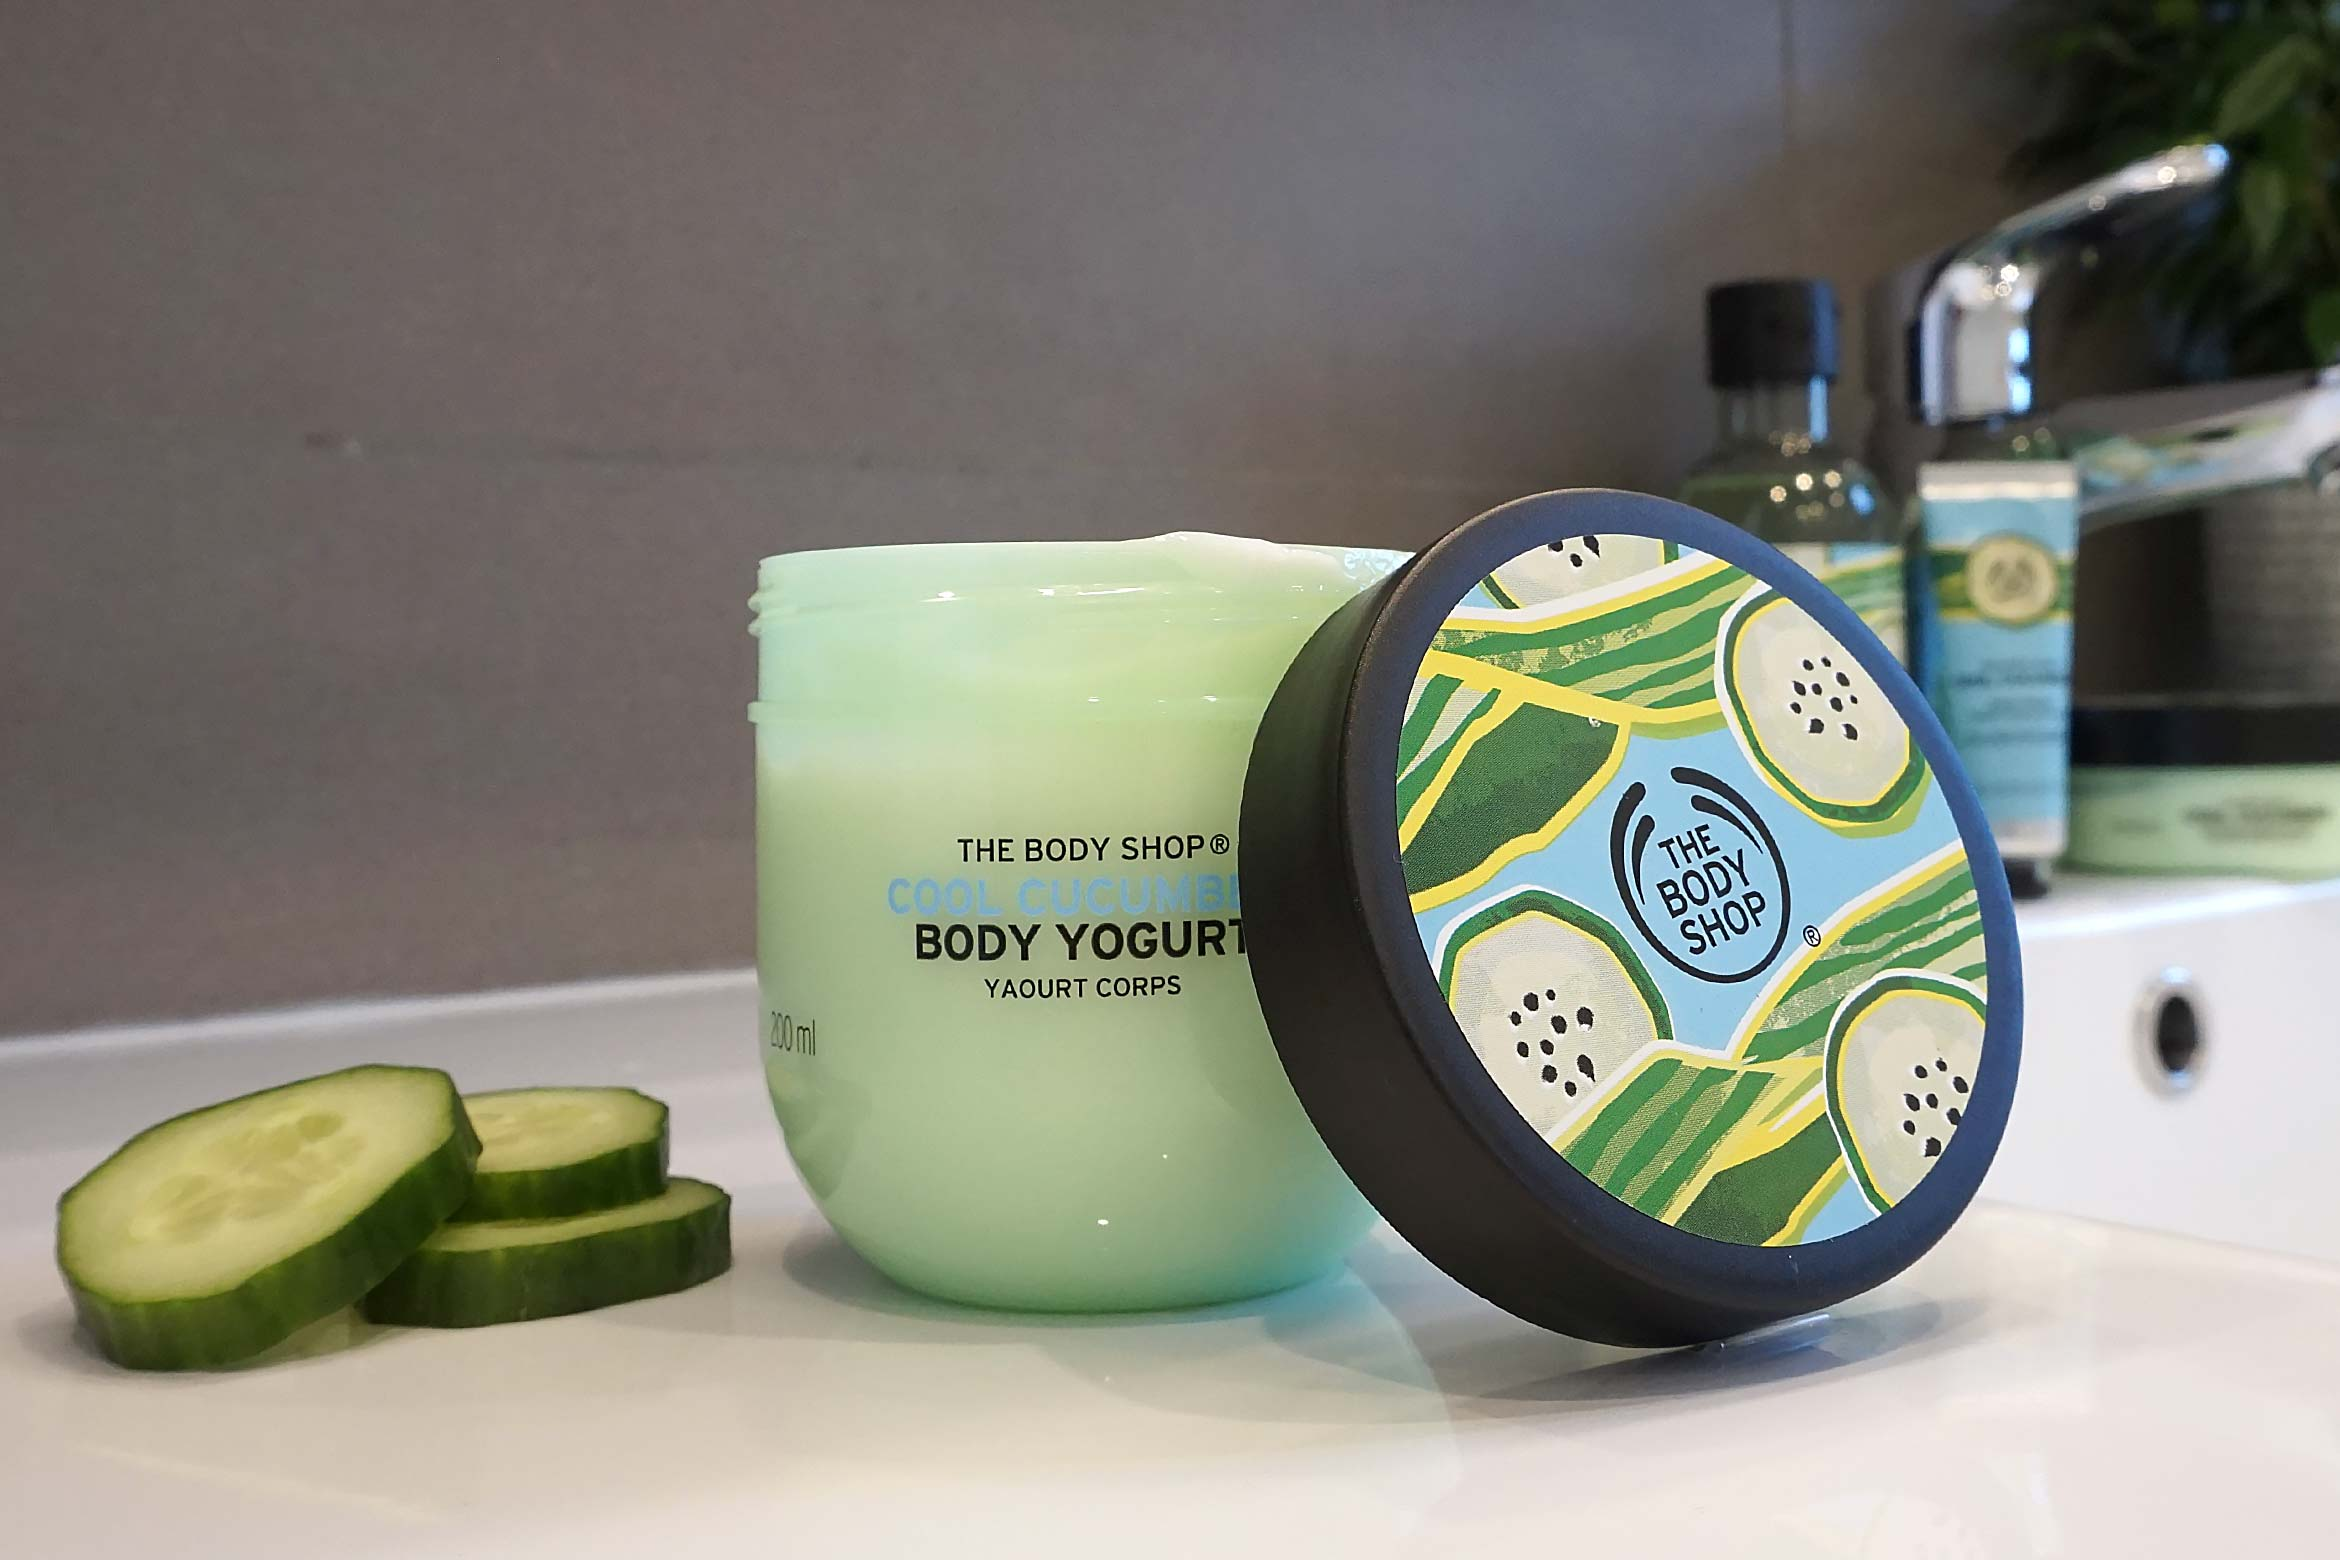 the body shop cool cucumber body yoghurt review